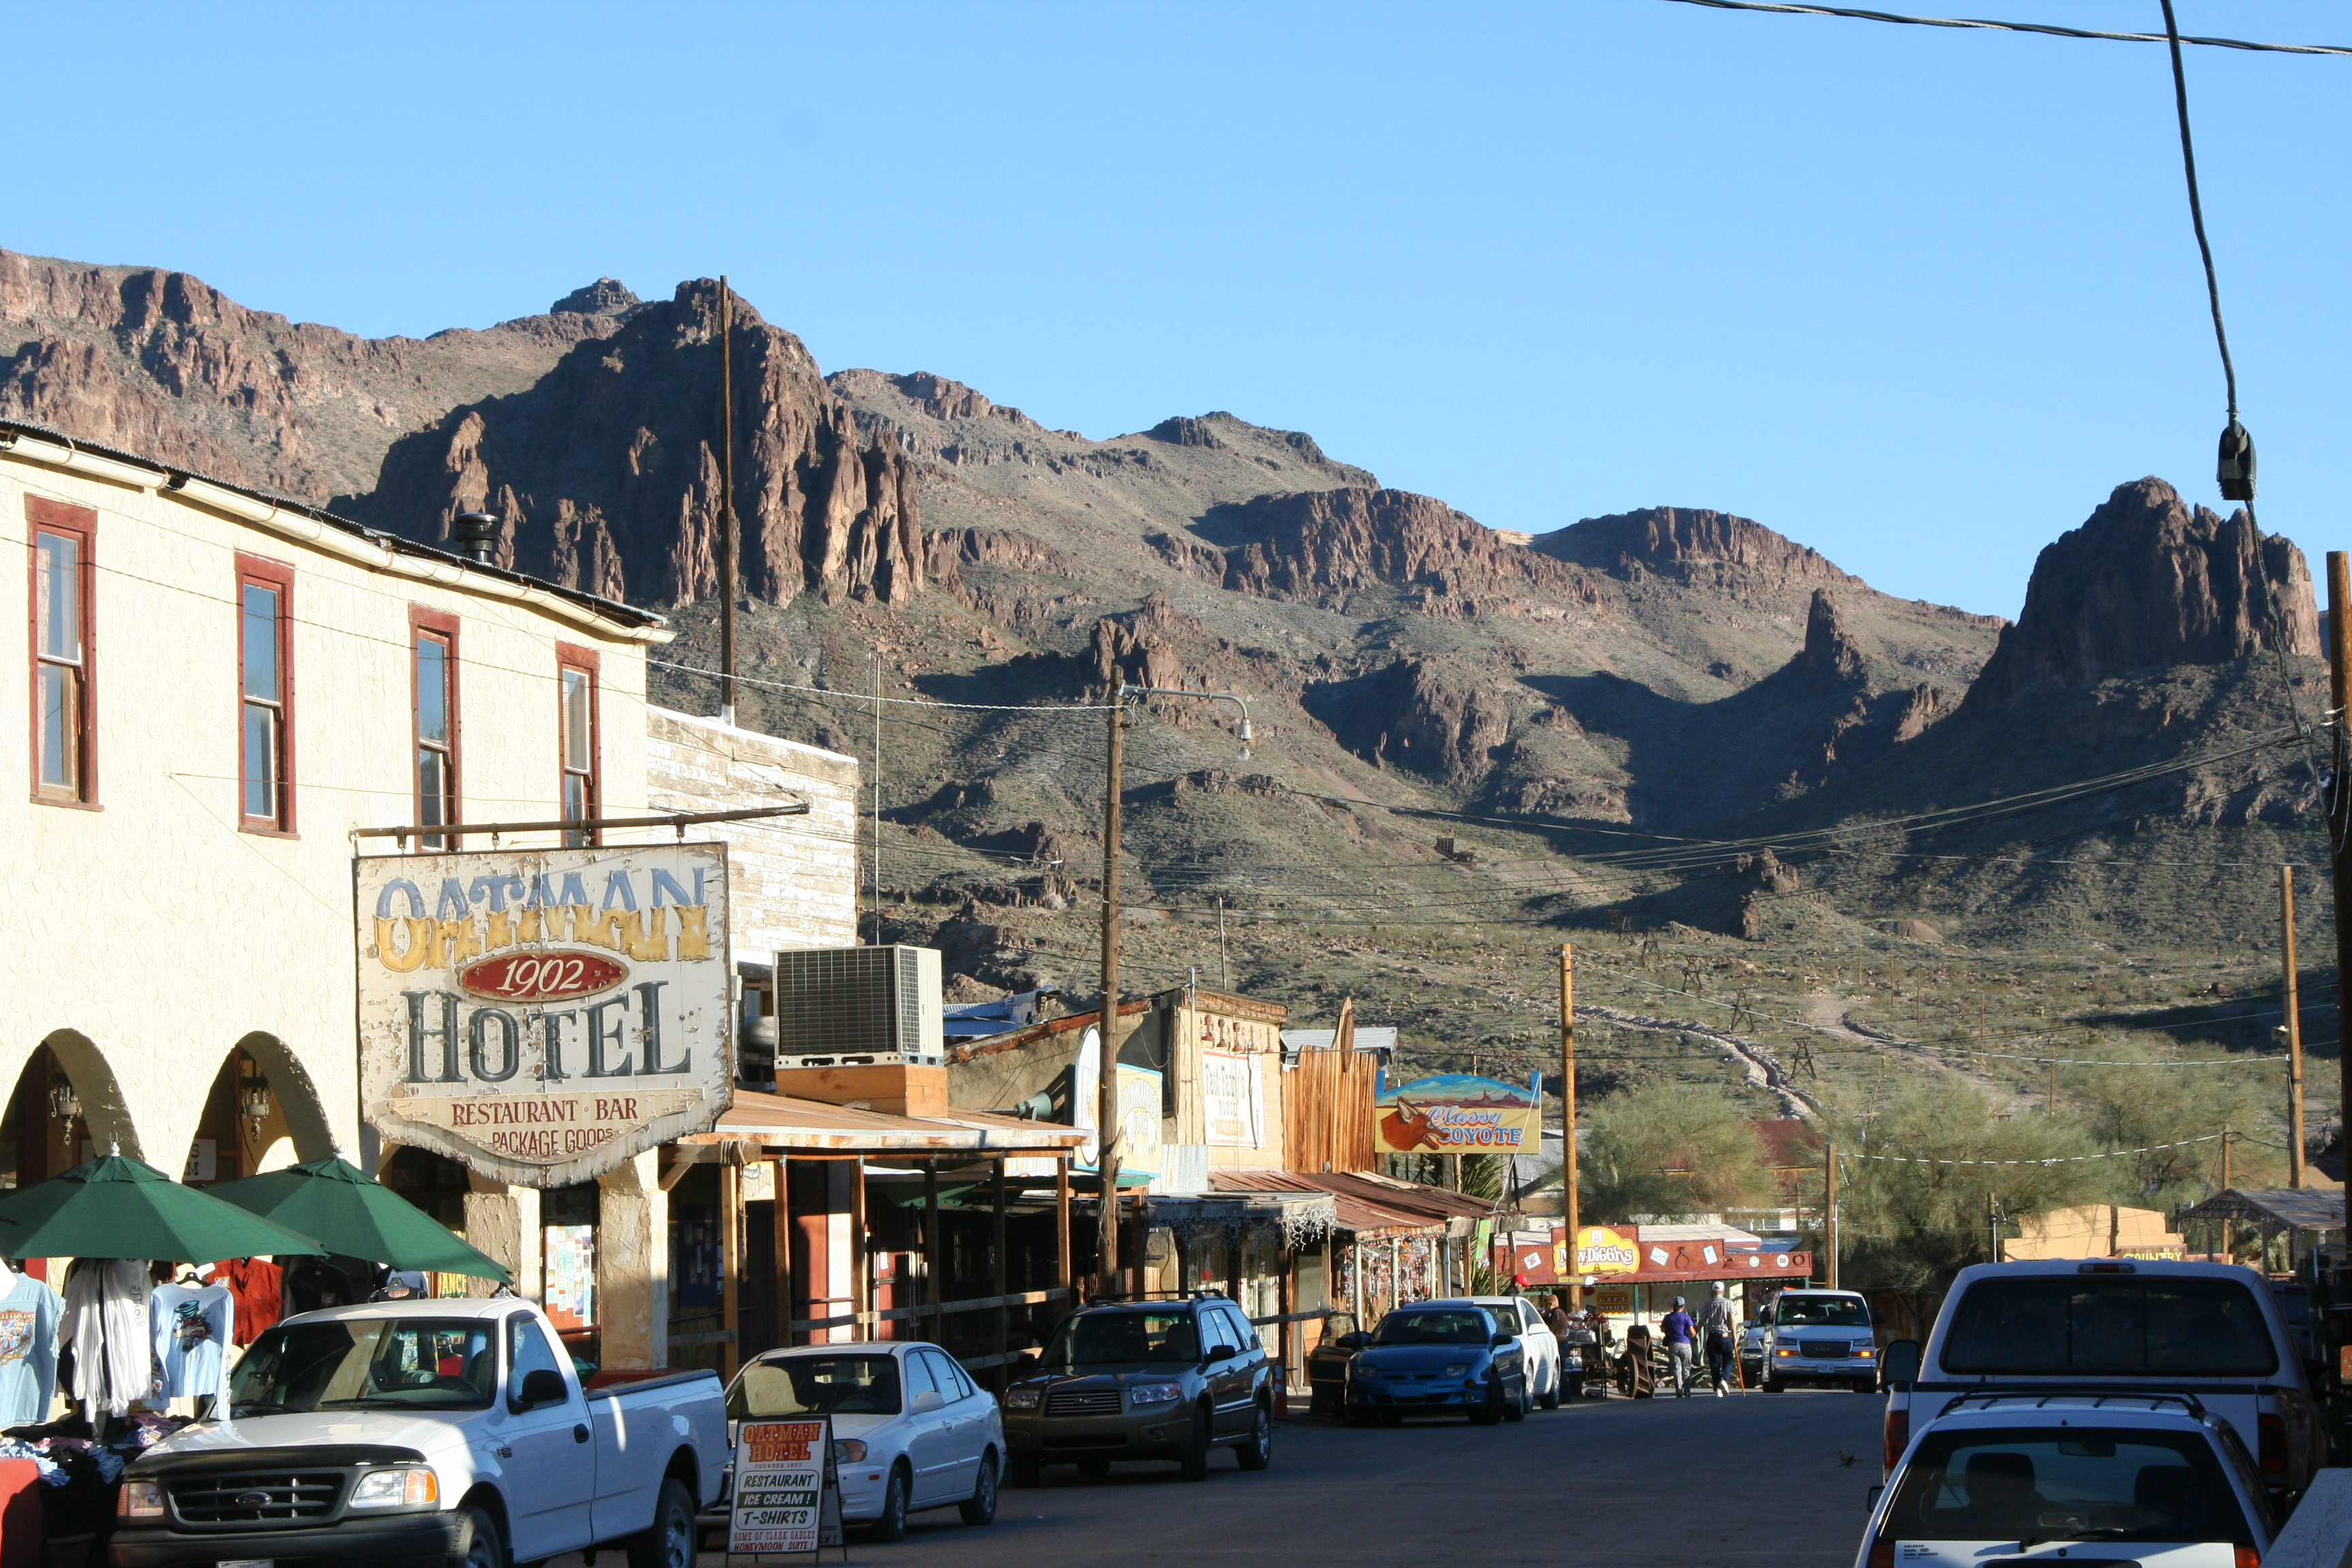 Oatman Arizona Wandering Through Time And Place